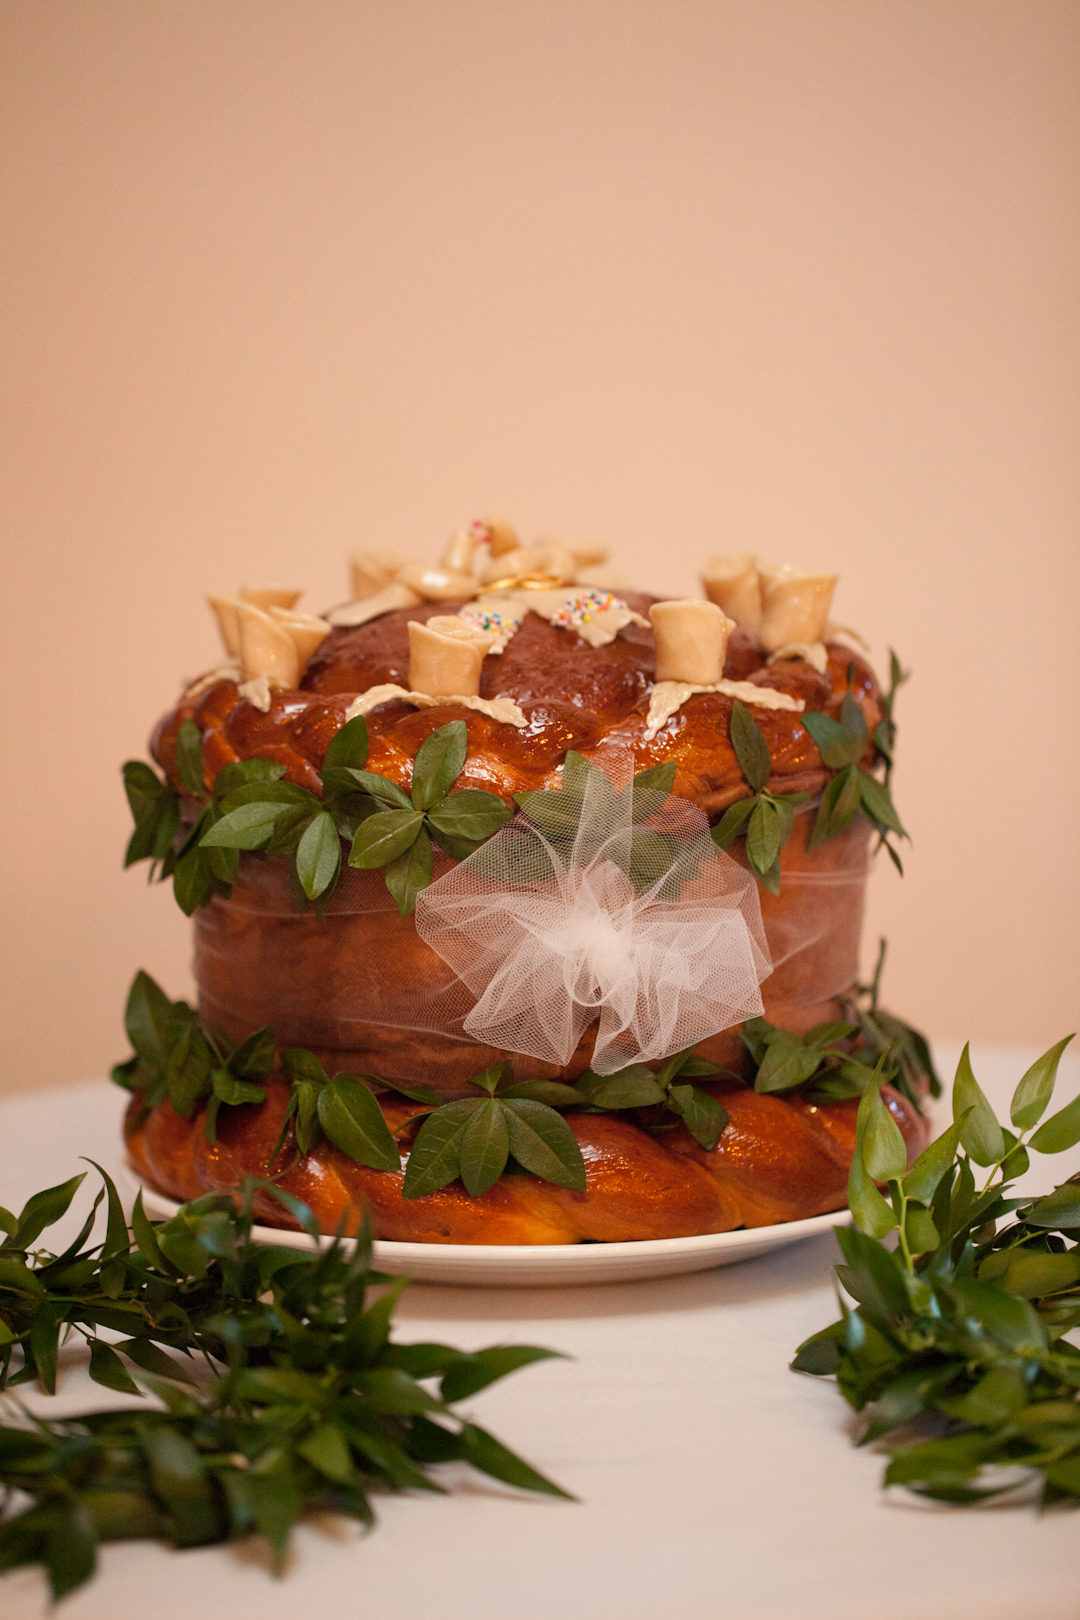 Korovai - Ukrainian cermonial wedding bread